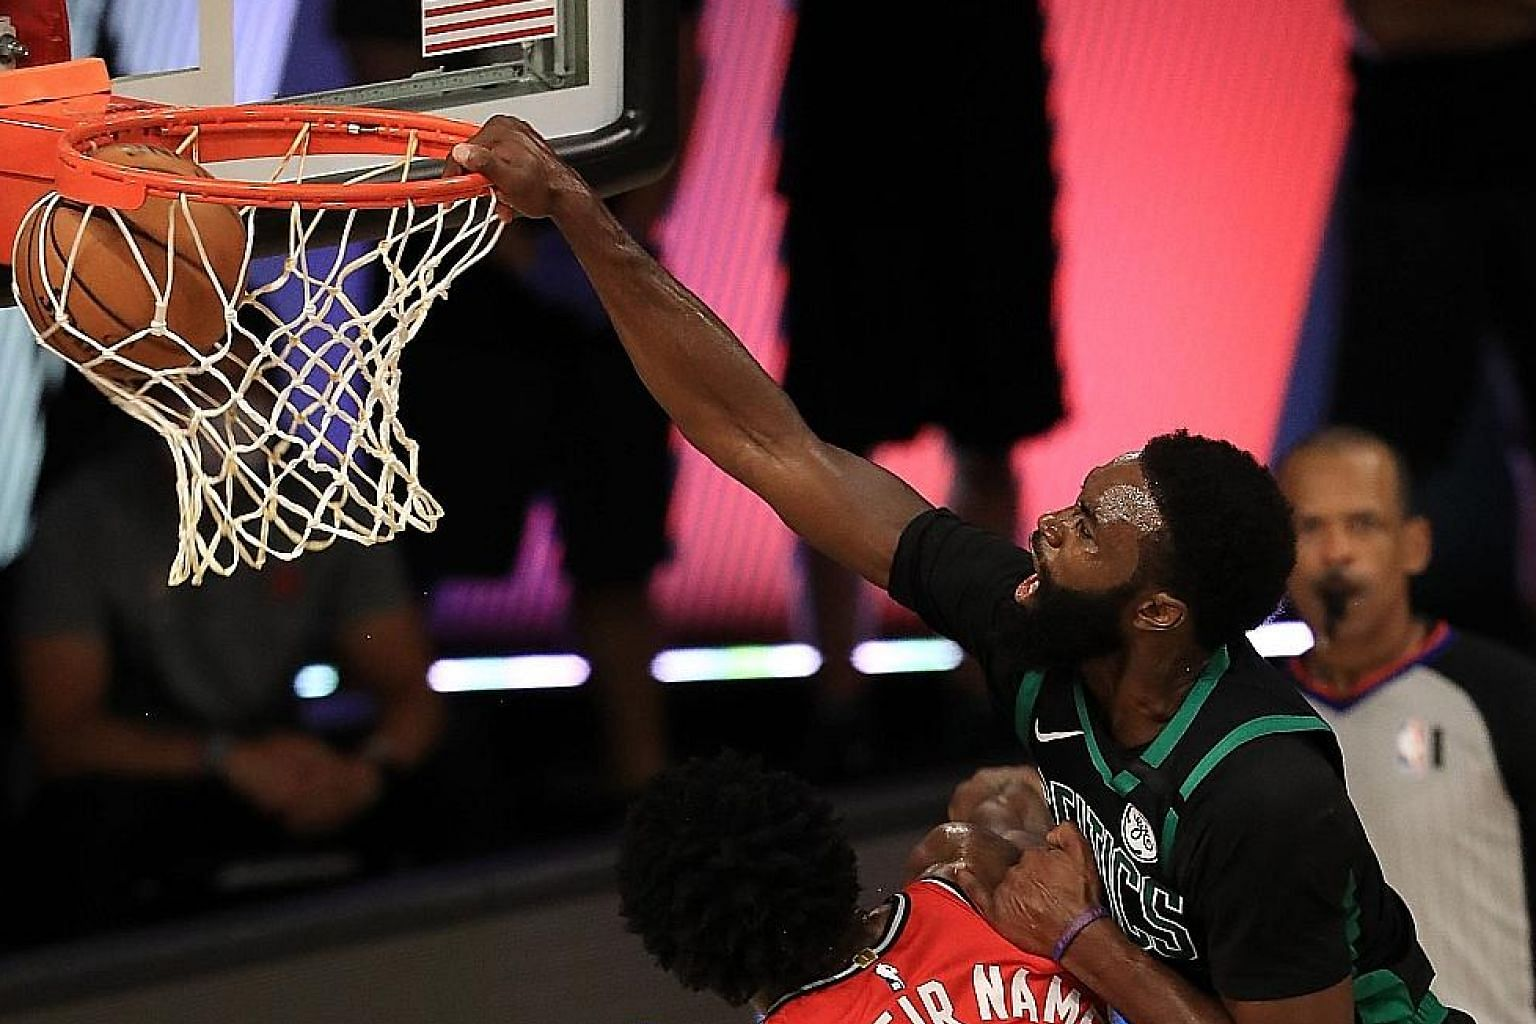 Celtics star Jaylen Brown dunking over Raptors forward O. G. Anunoby during Game 5 of their NBA Eastern Conference semi-final series. Brown had a game-high 27 points. PHOTO: AGENCE FRANCE-PRESSE